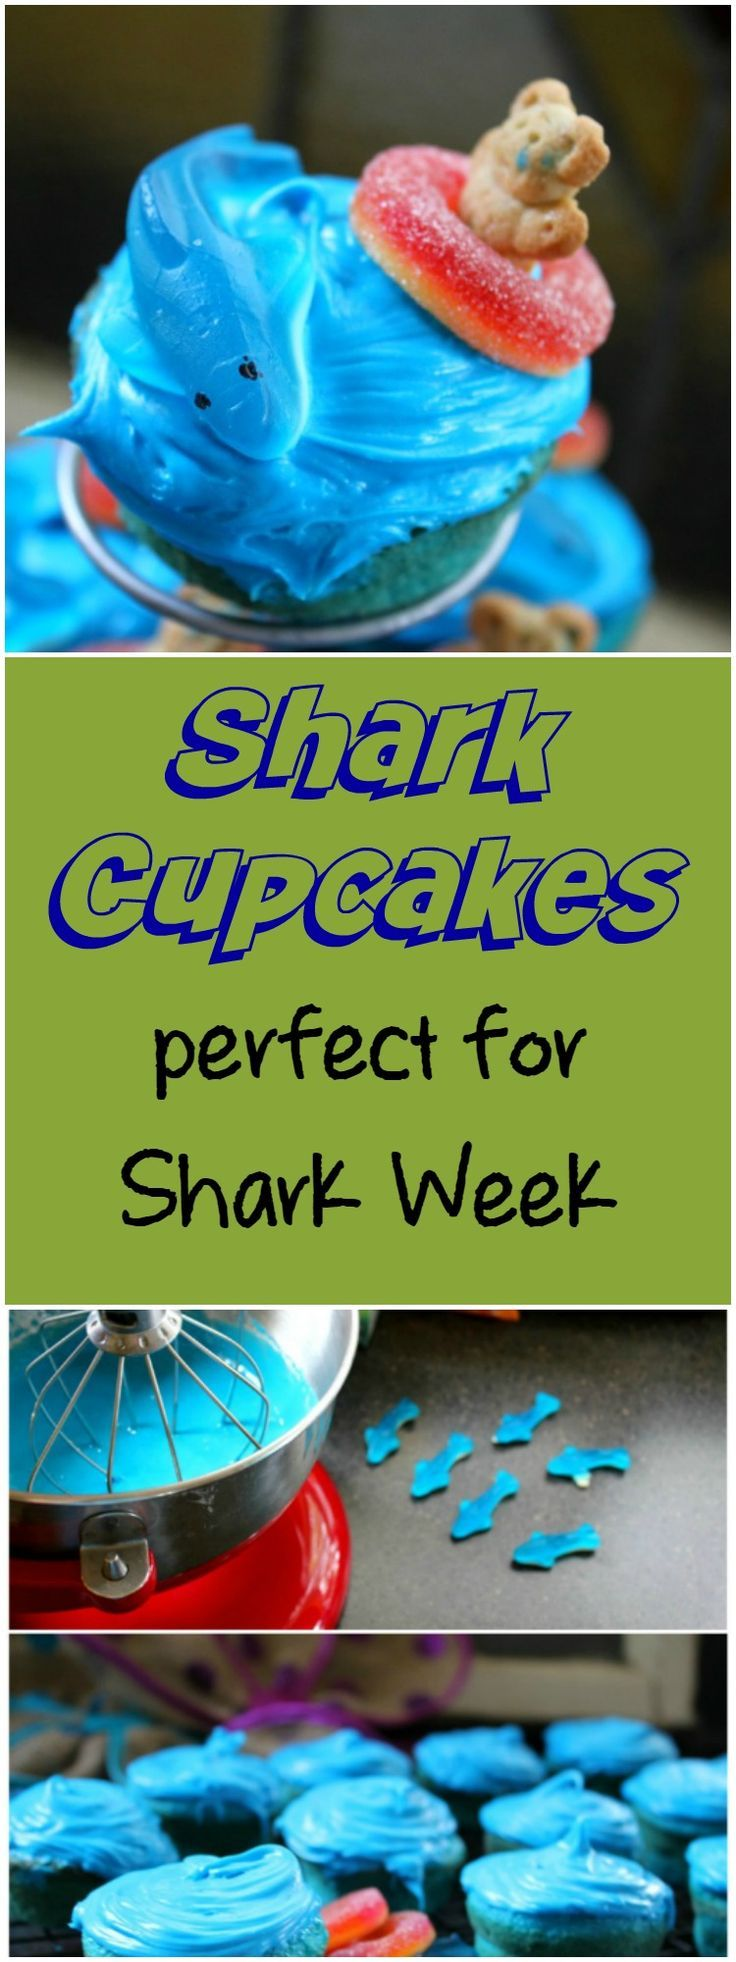 Shark Cupcakes Perfect for Shark Week - House of Faucis #sharkweekfood